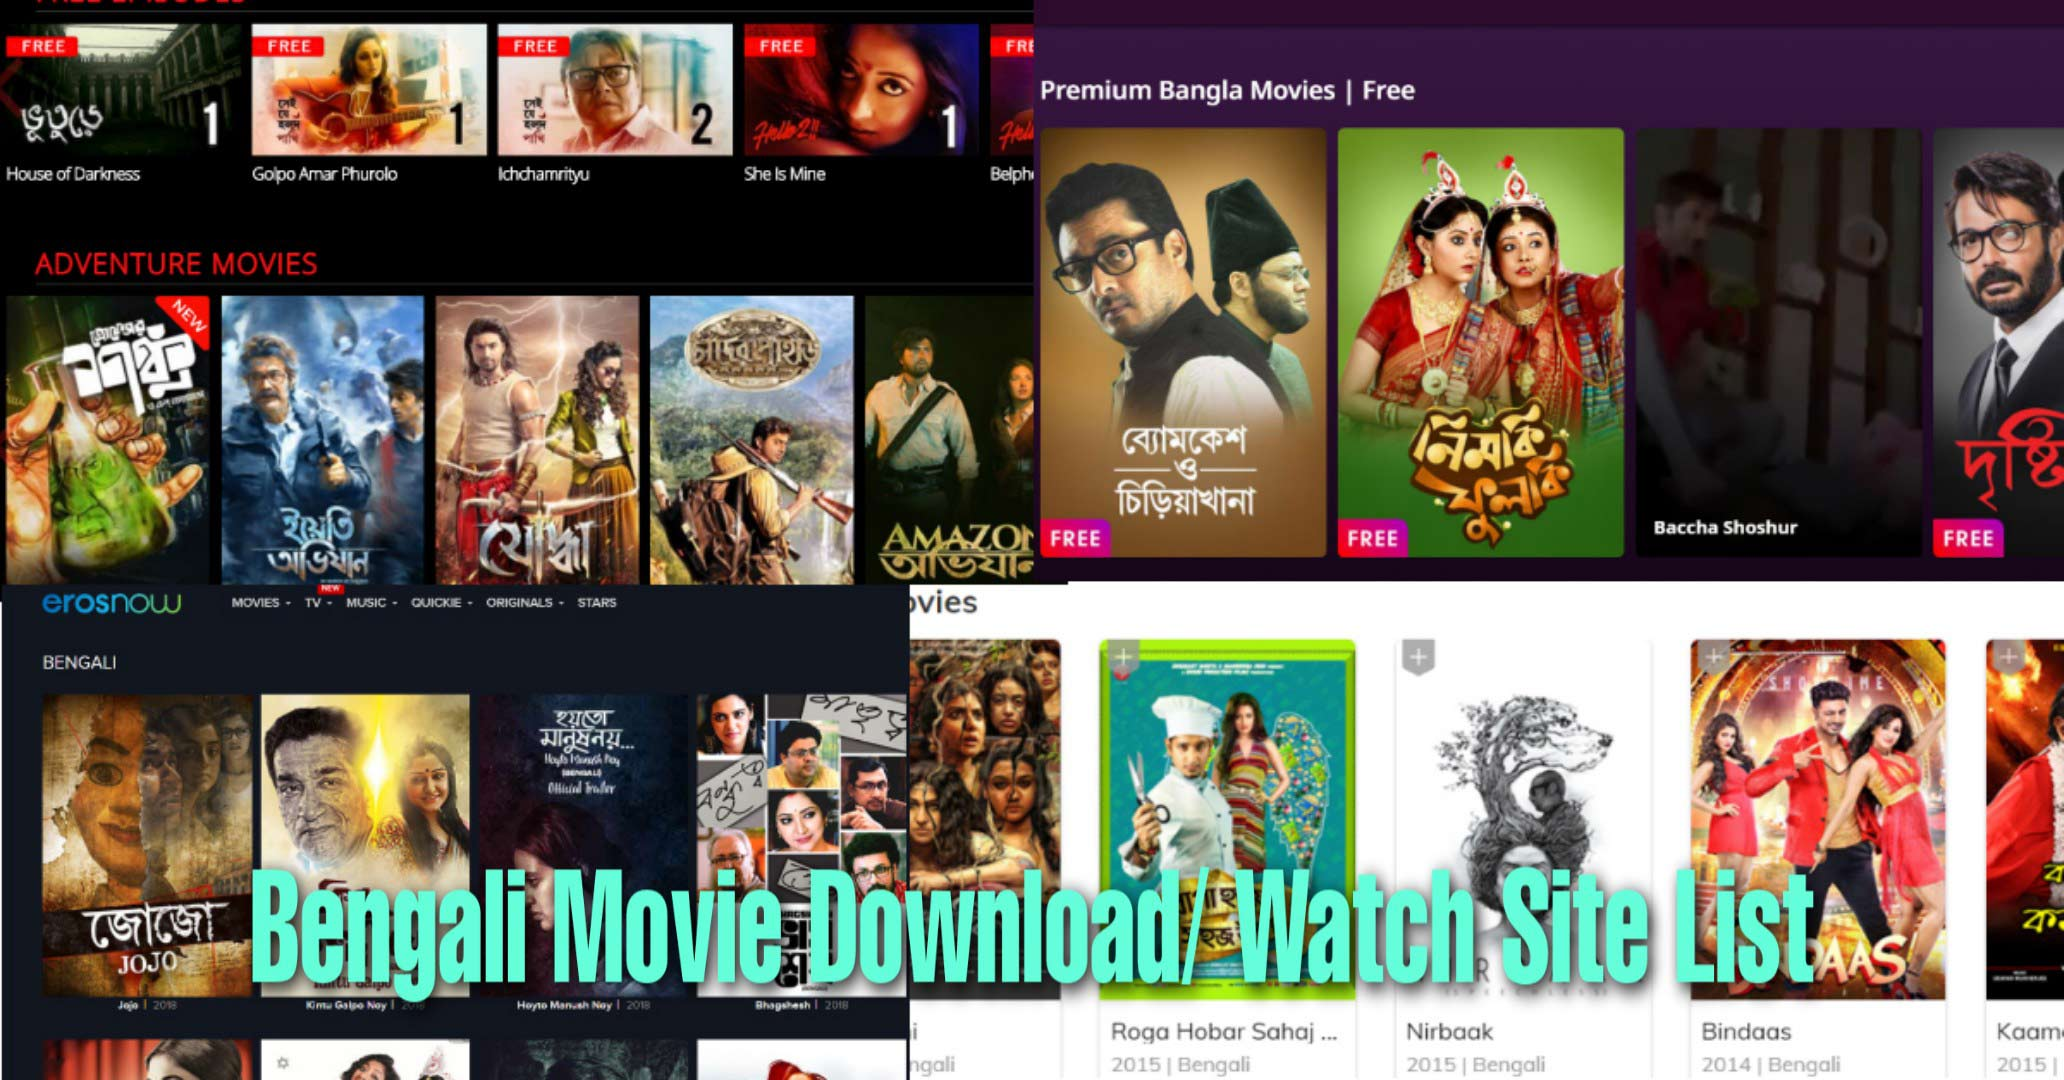 Bengalii Movie Download site list for free